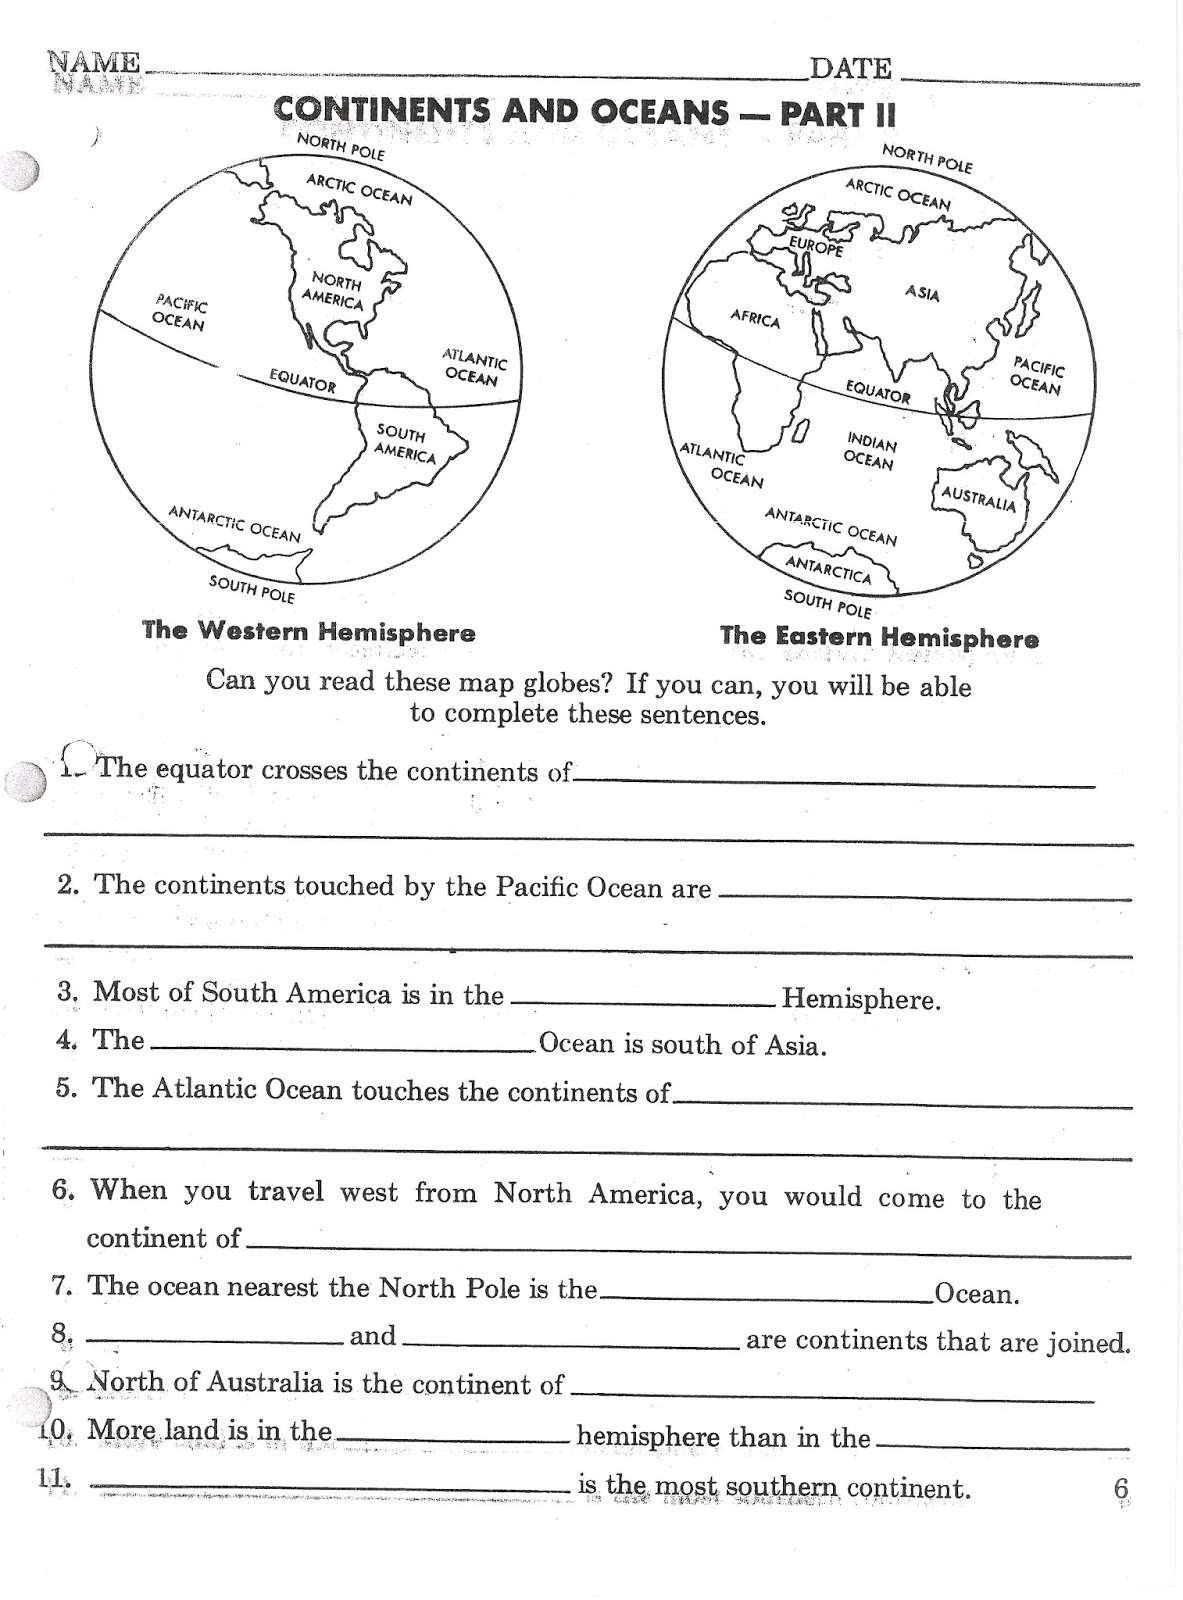 Mr Stantons Social Studies September 2013 – Label the Continents and Oceans Worksheet